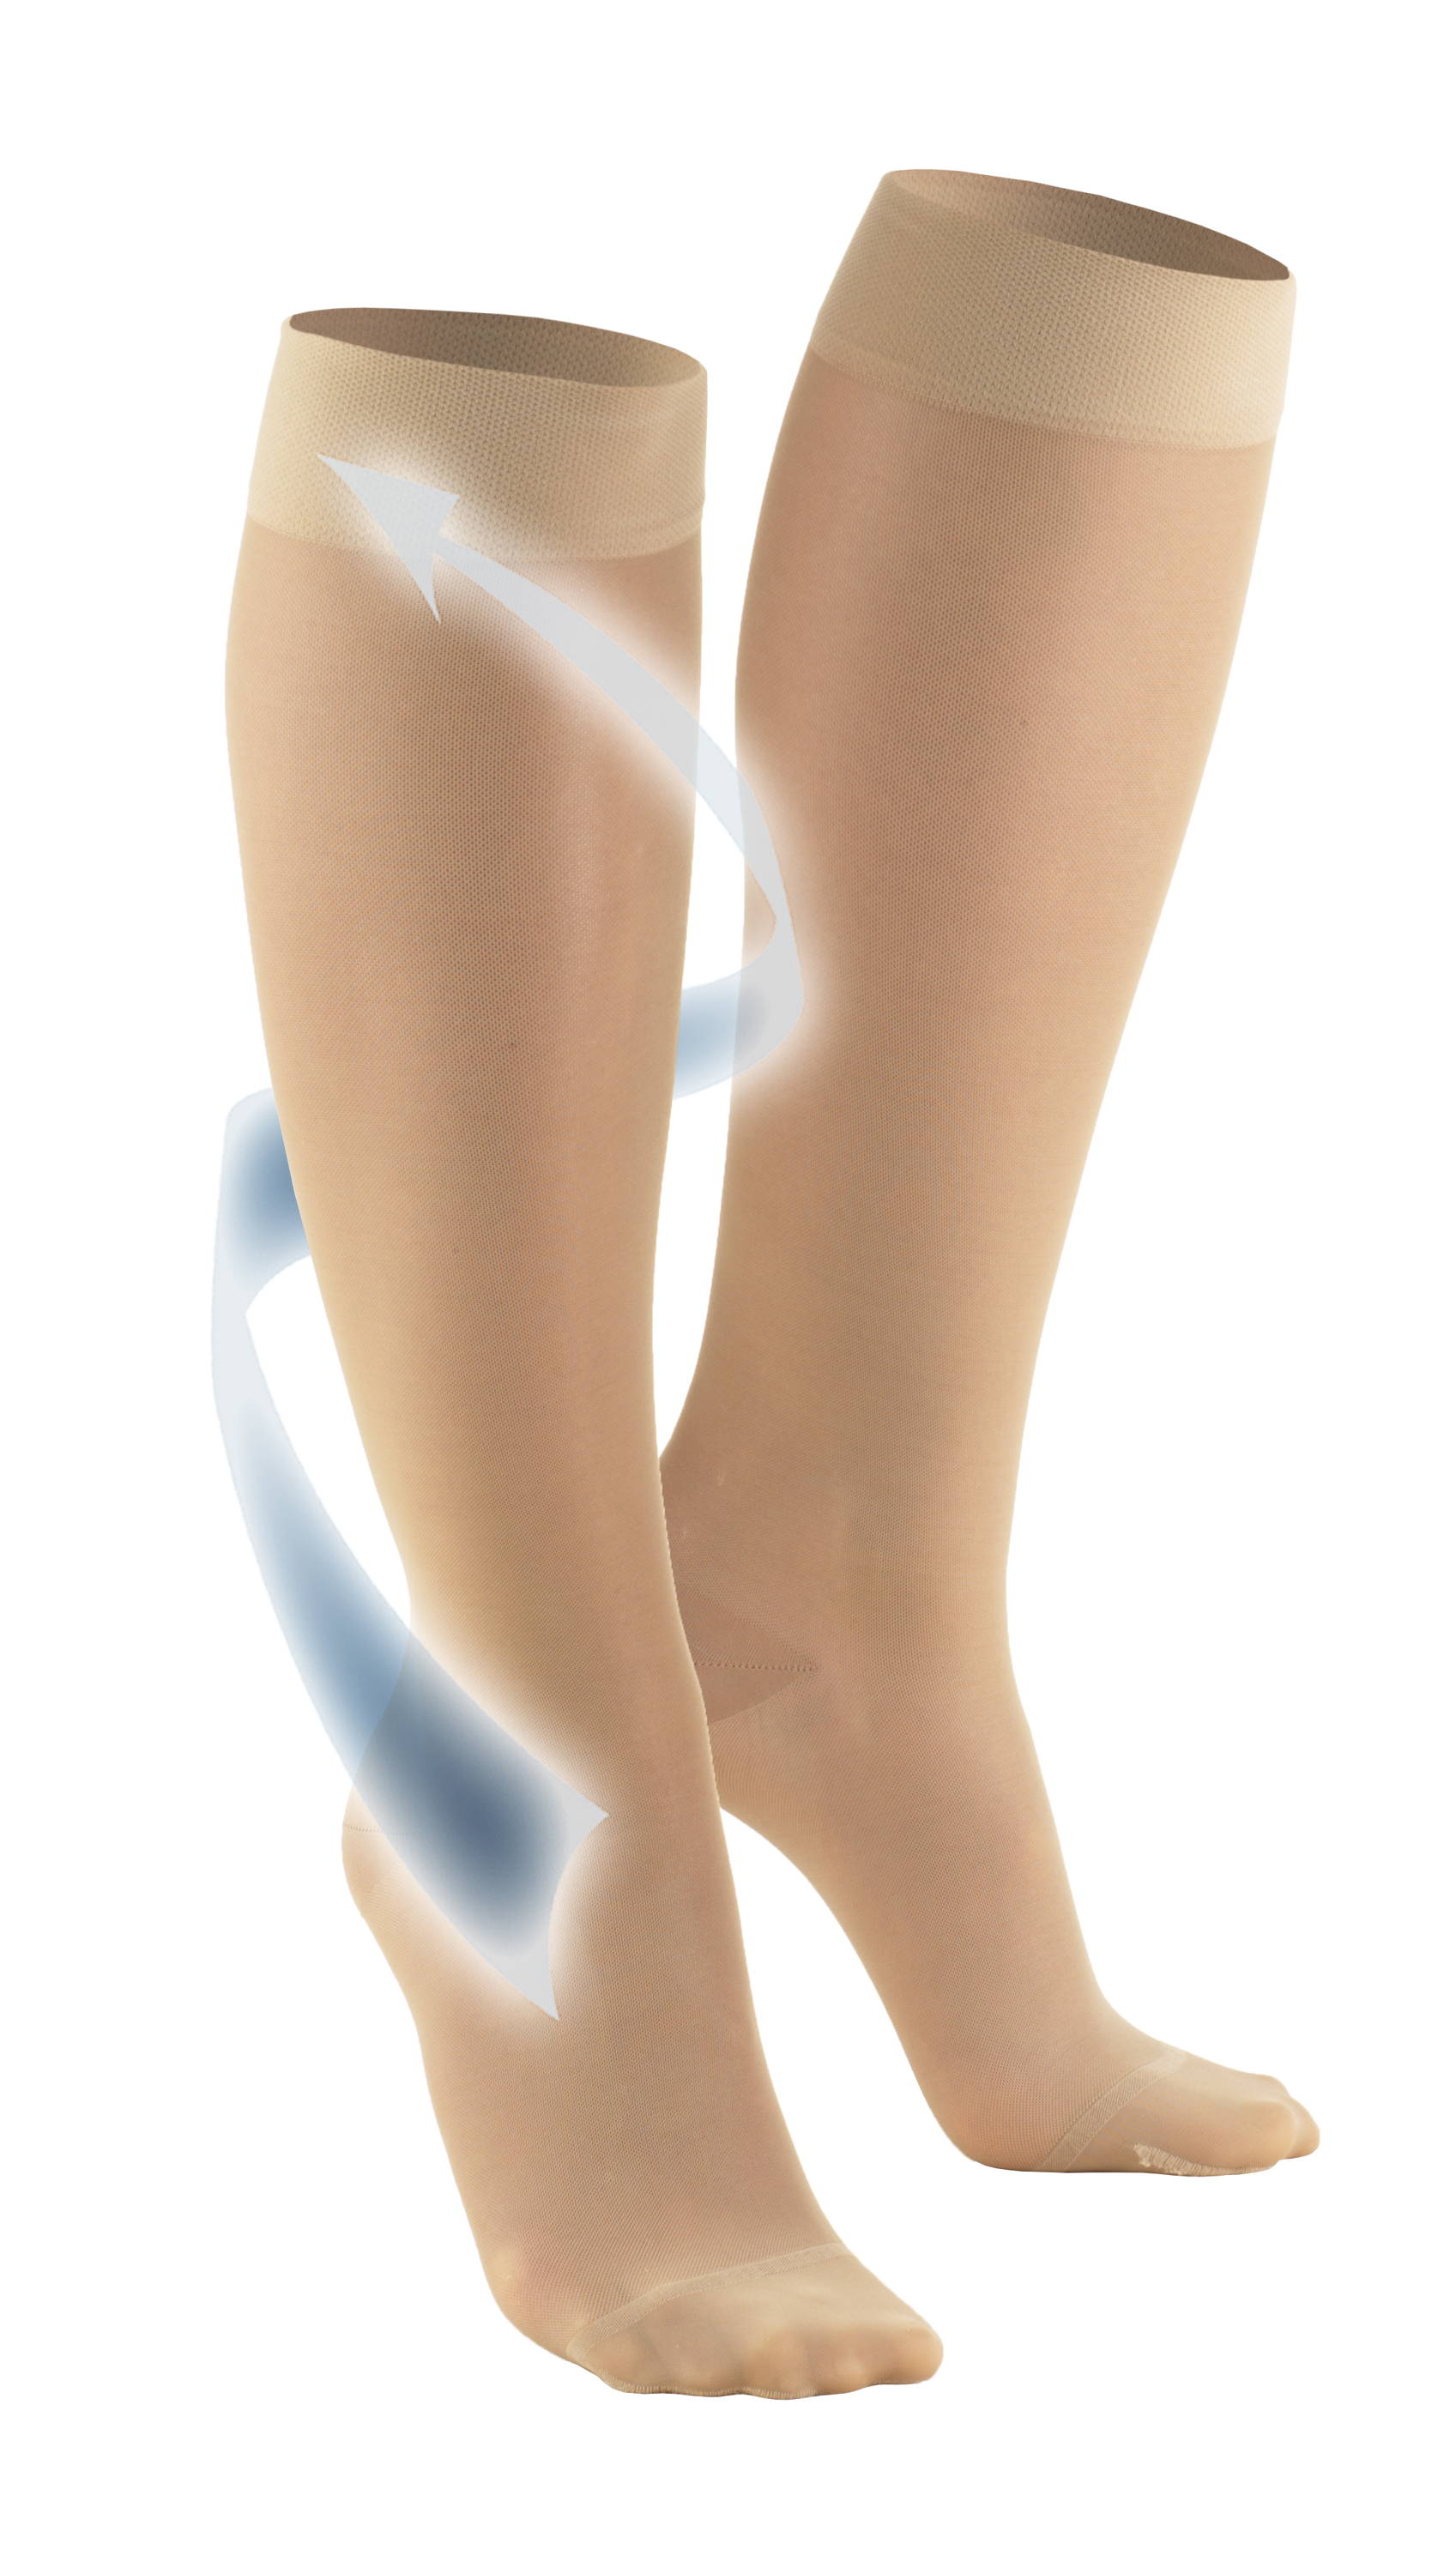 e81c6e25cc PROVIDING TWO PRIMARY BENEFITS TO THE LEGS: The most beneficial effect is  action on the capillaries and tissues. Compression applied in this ...